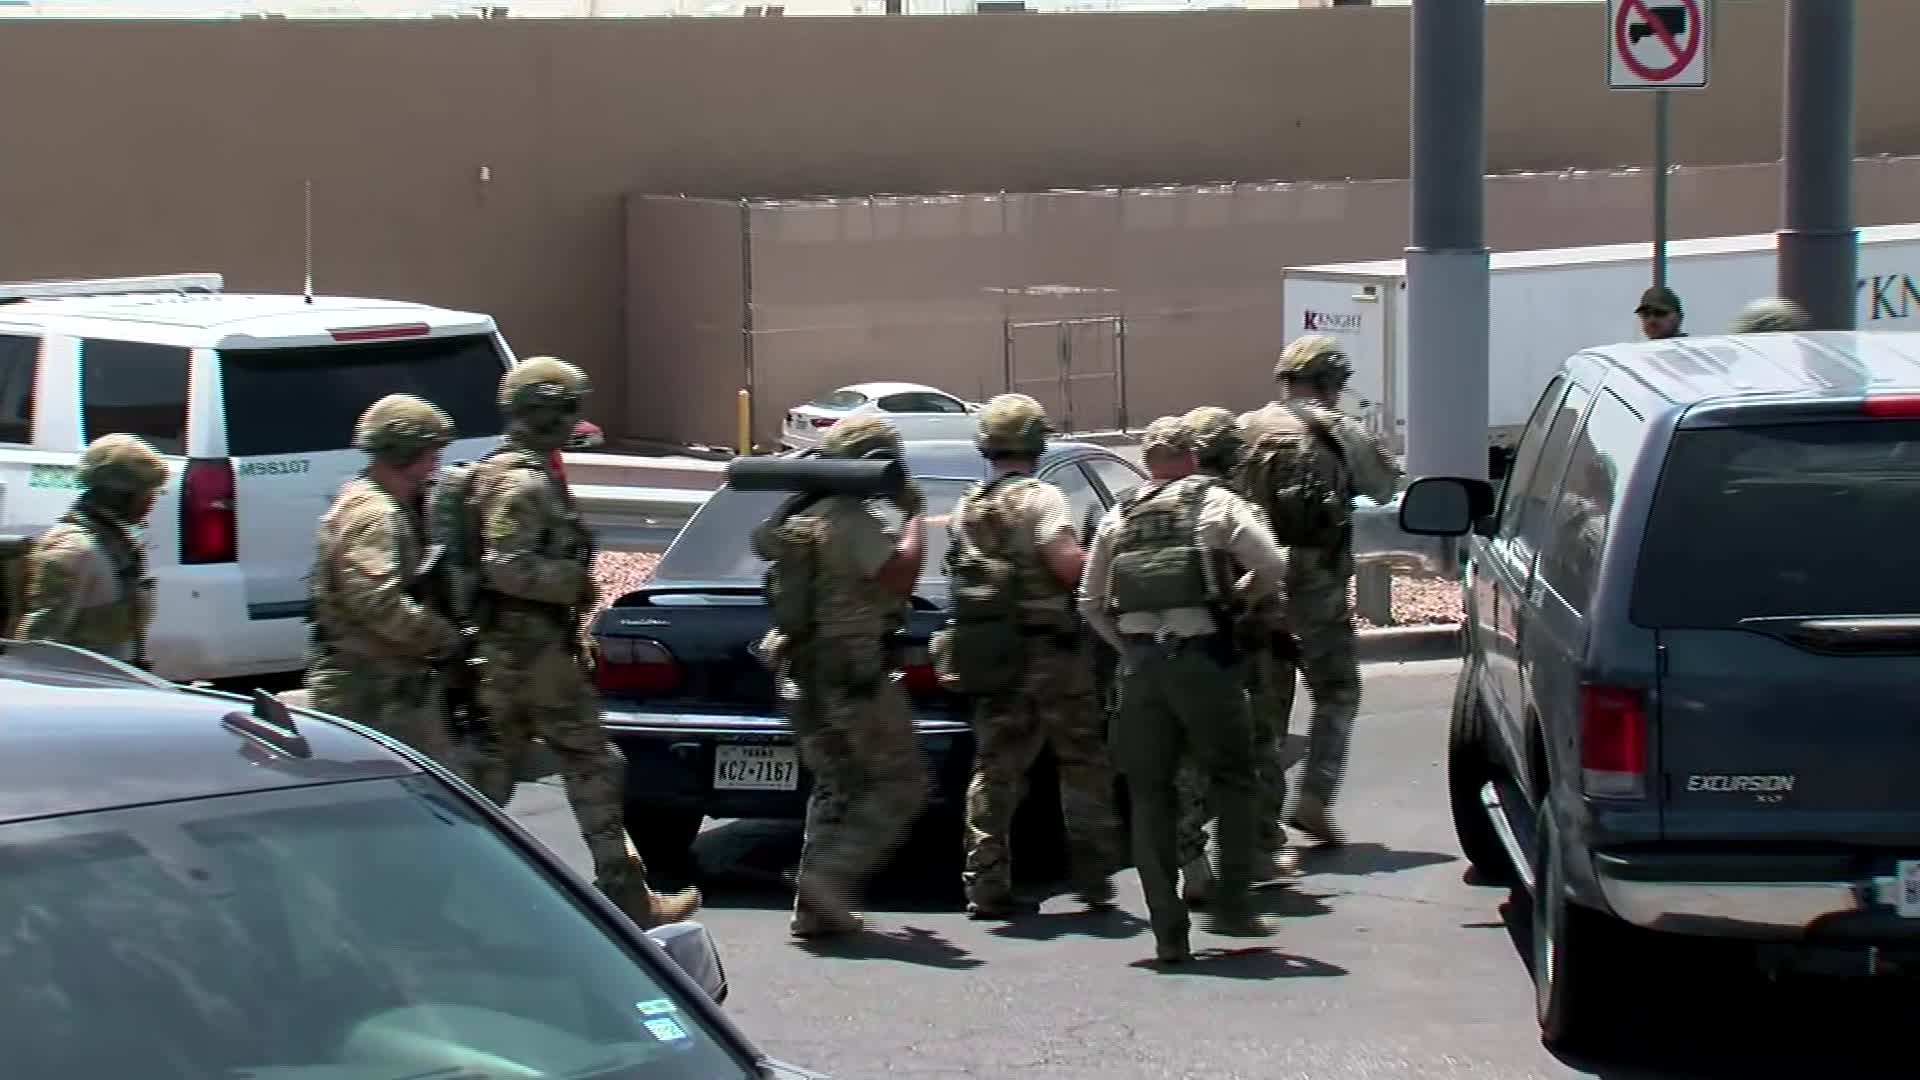 Mass shooting in El Paso, Texas, multiple fatalities reported